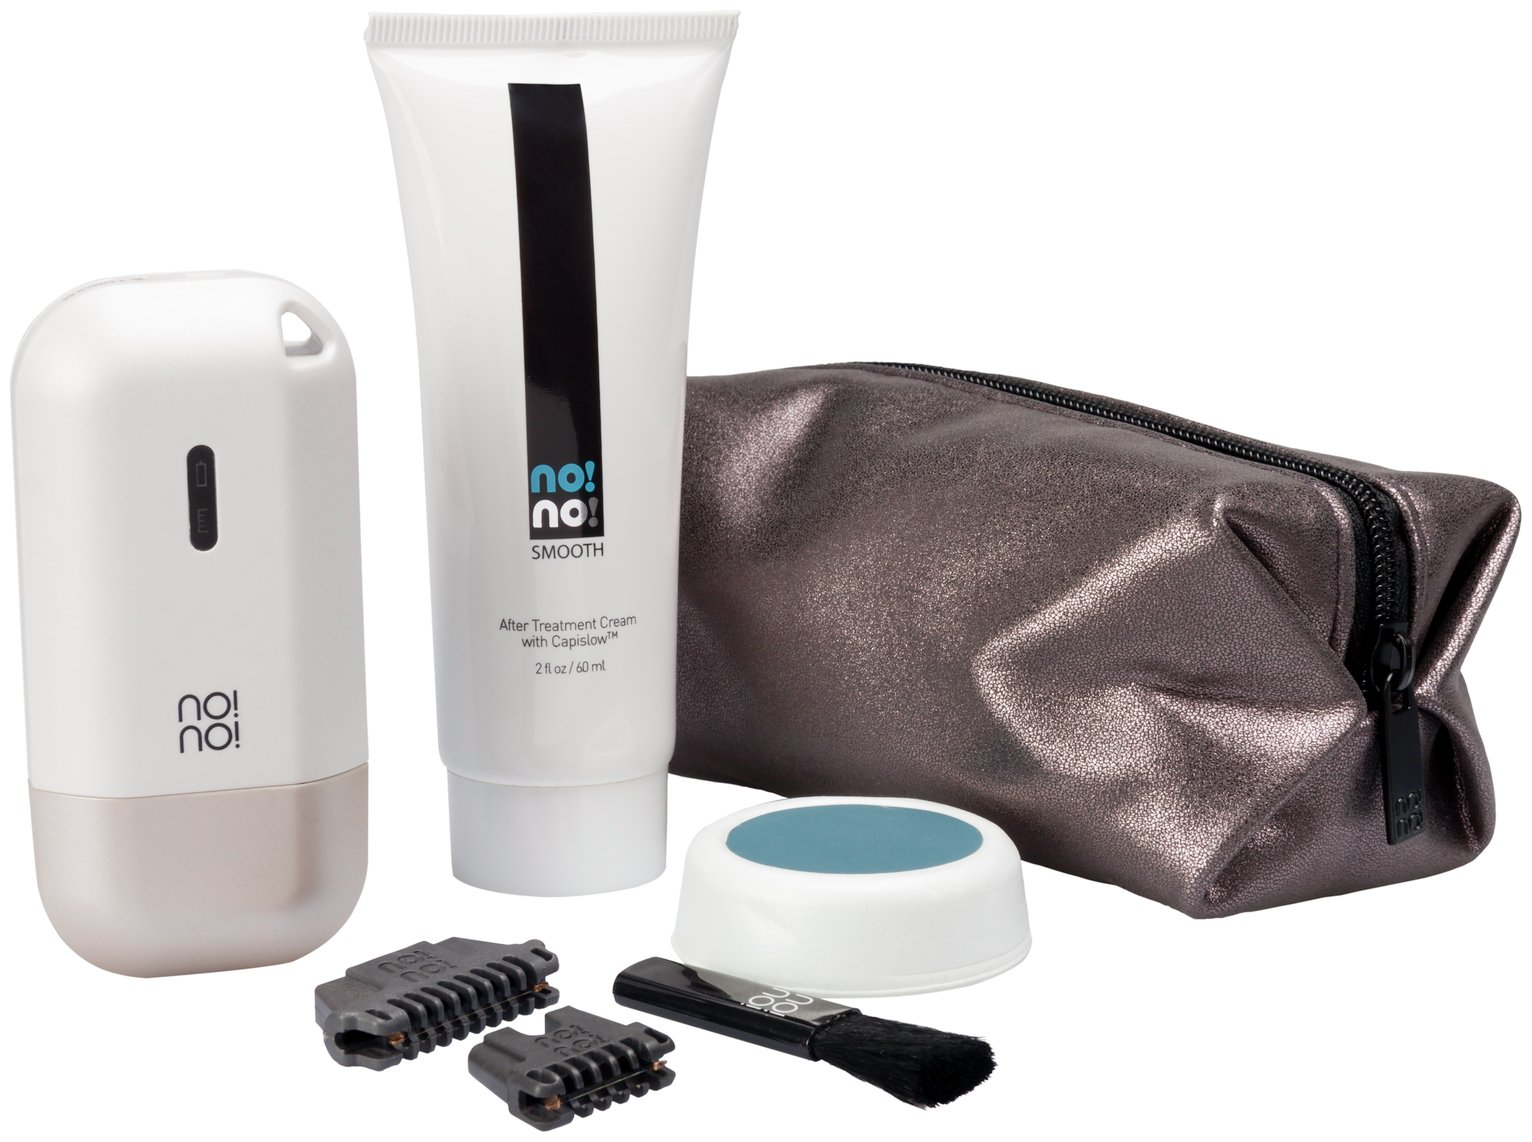 no!no! Micro Hair Removal Gift Set